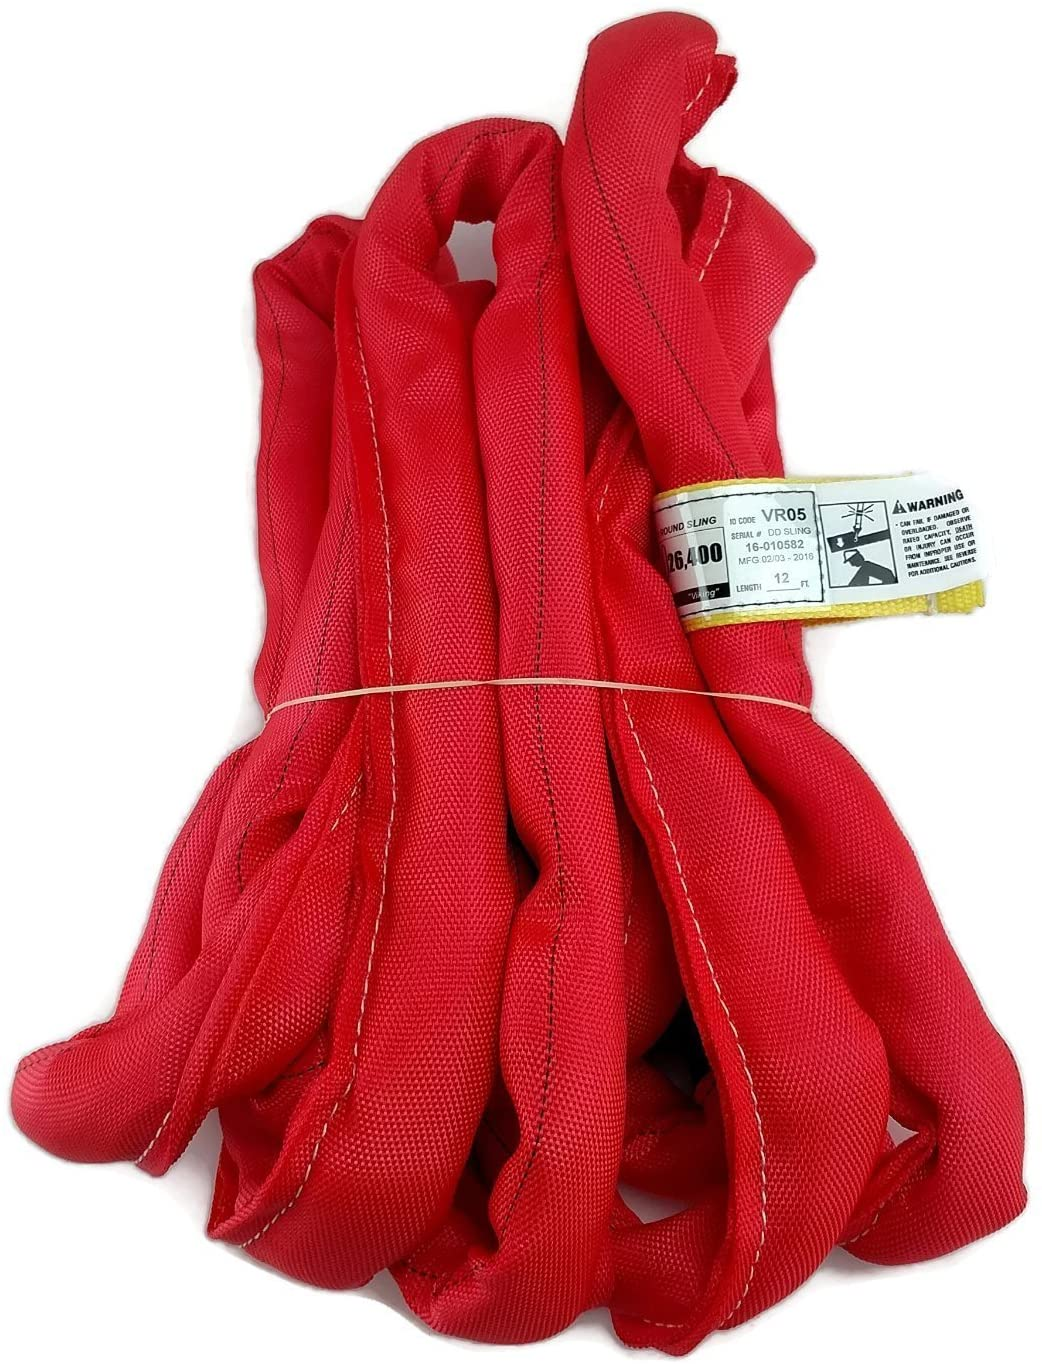 USA Made VR5 X 12' Red Slings 4'-30' Lengths in Listing, Double PLY Cover Endless Round Poly Lifting Slings, 13,200 lbs Vert, 10,560 lbs Choker, 26,400 lbs Basket (USA Polyester) (12 FT)